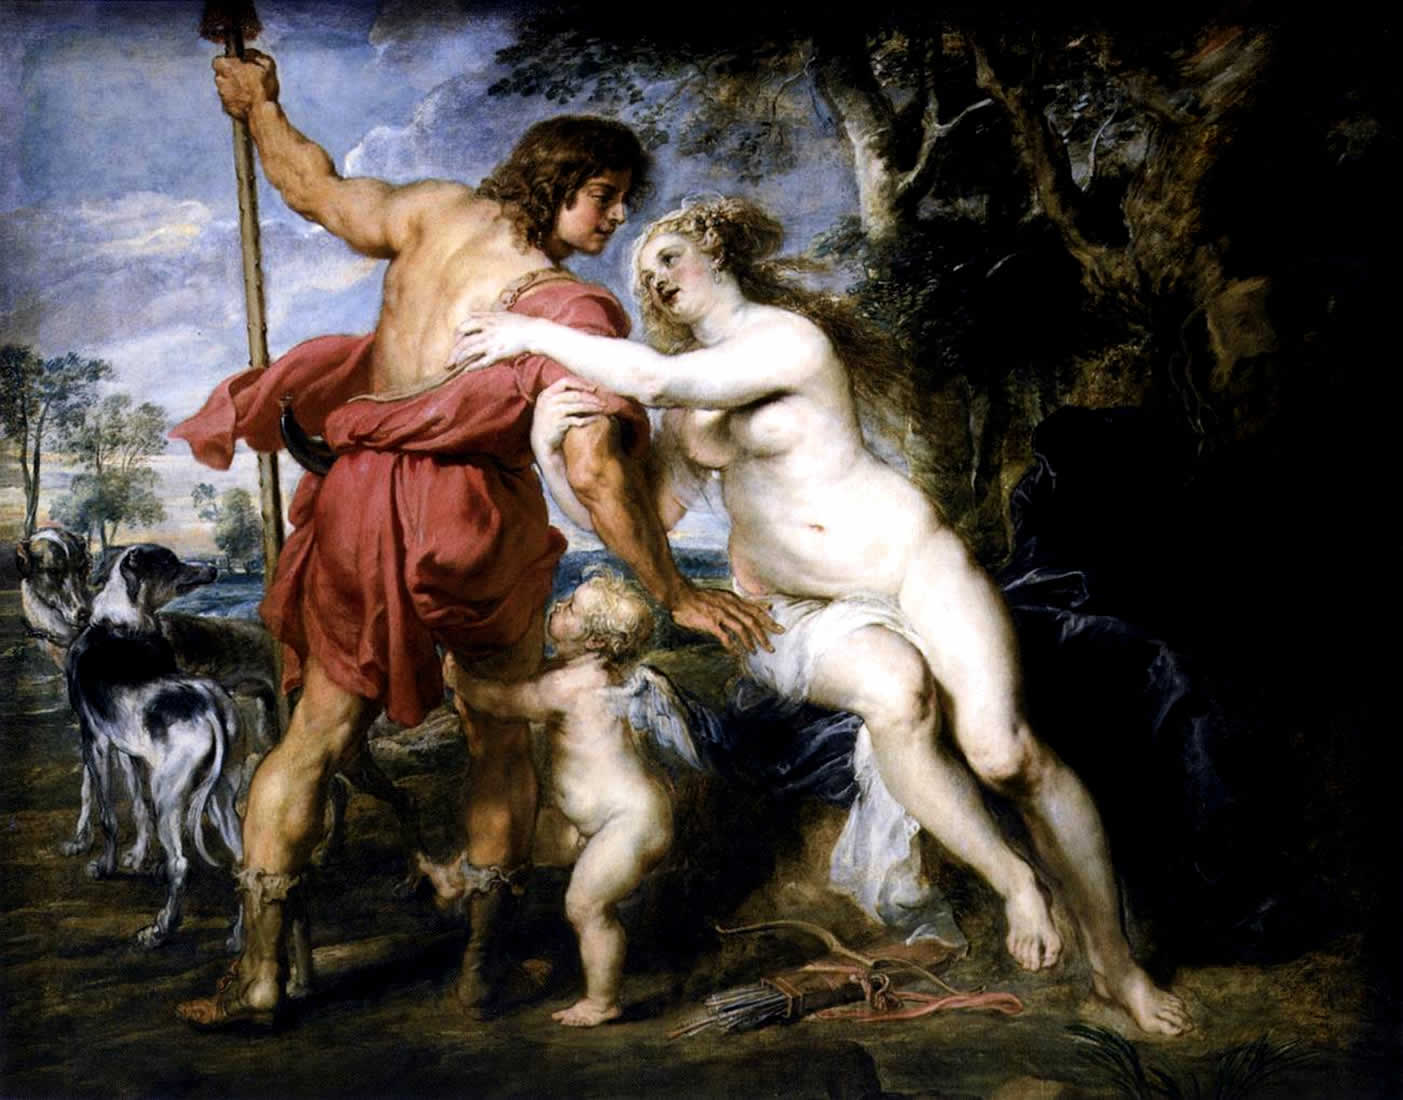 venus_and_adonis_by_peter_paul_rubens